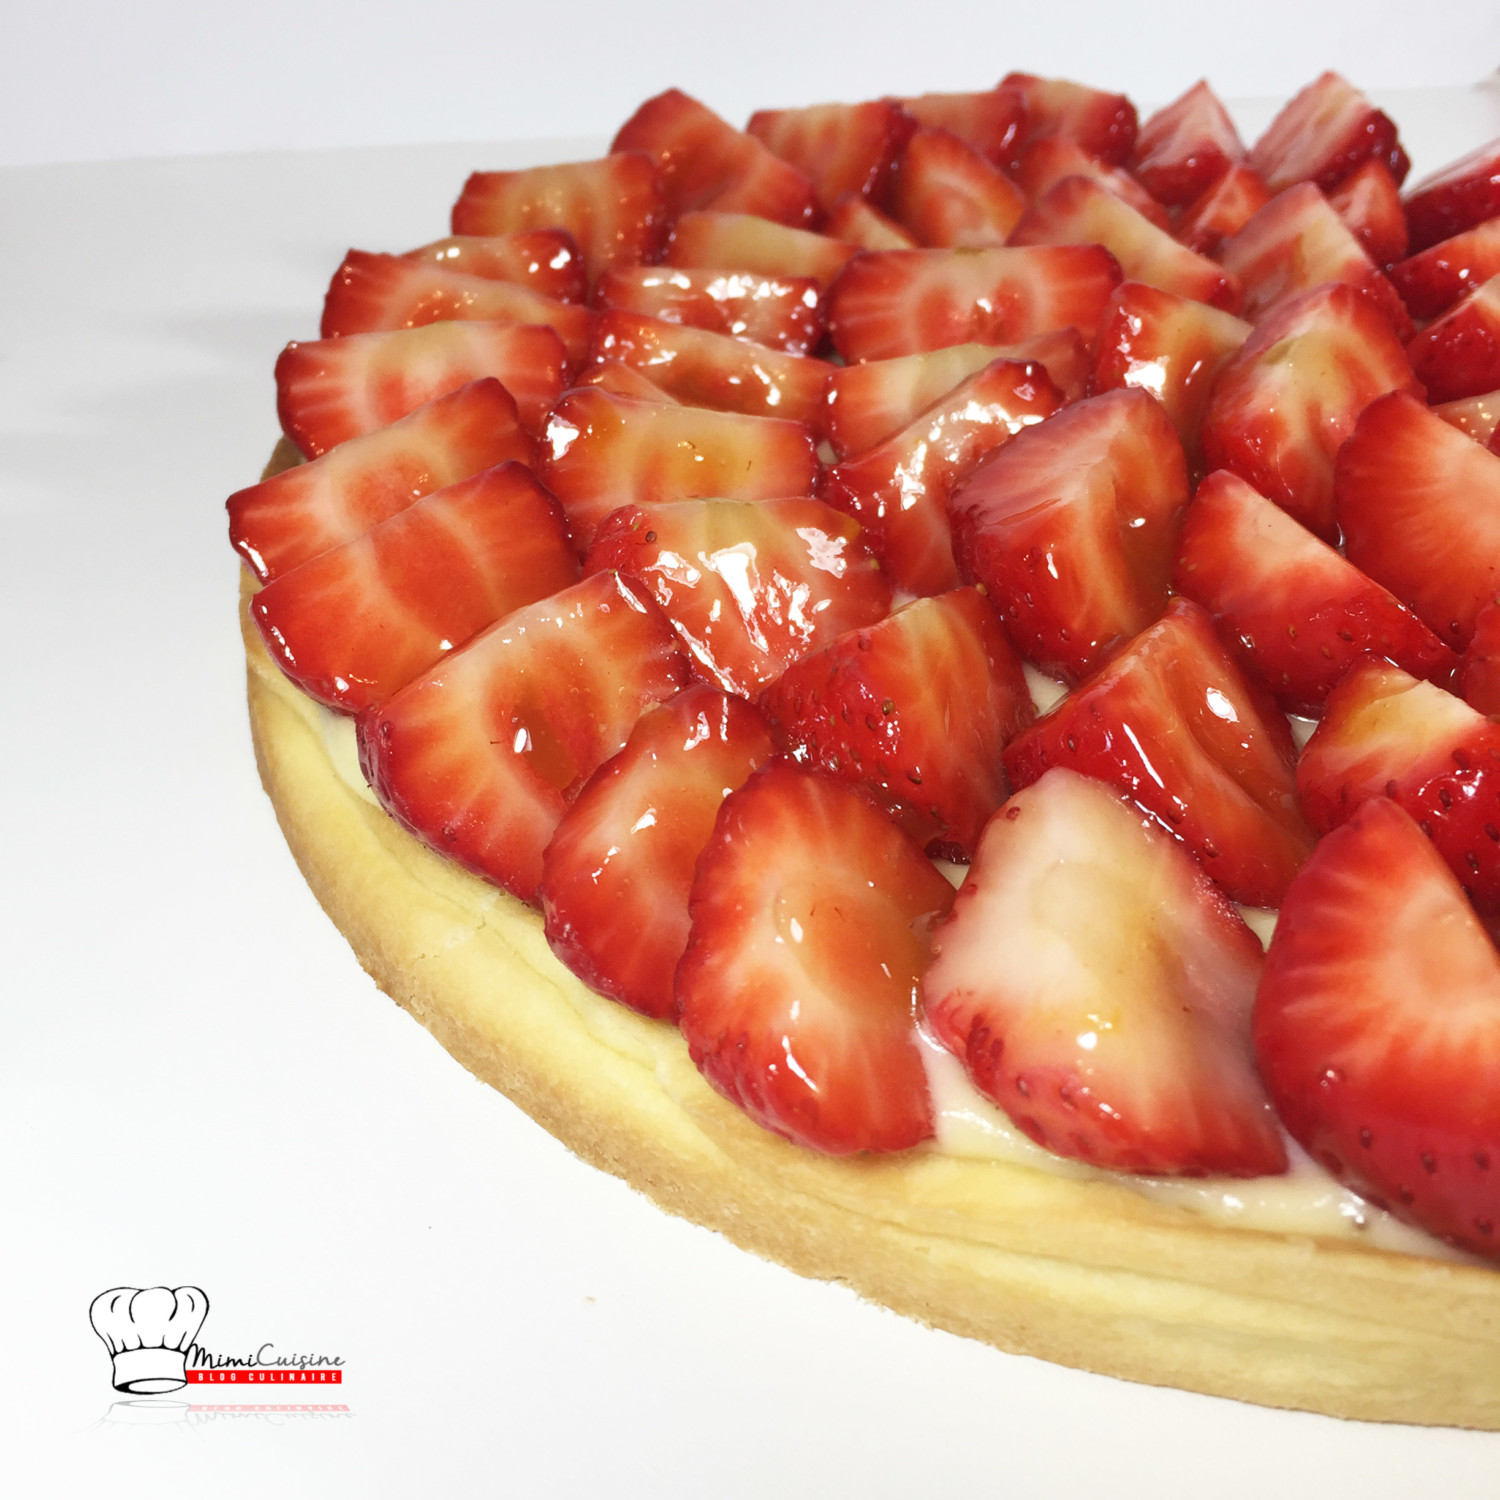 tarte aux fraises recette thermomix mimi cuisine. Black Bedroom Furniture Sets. Home Design Ideas